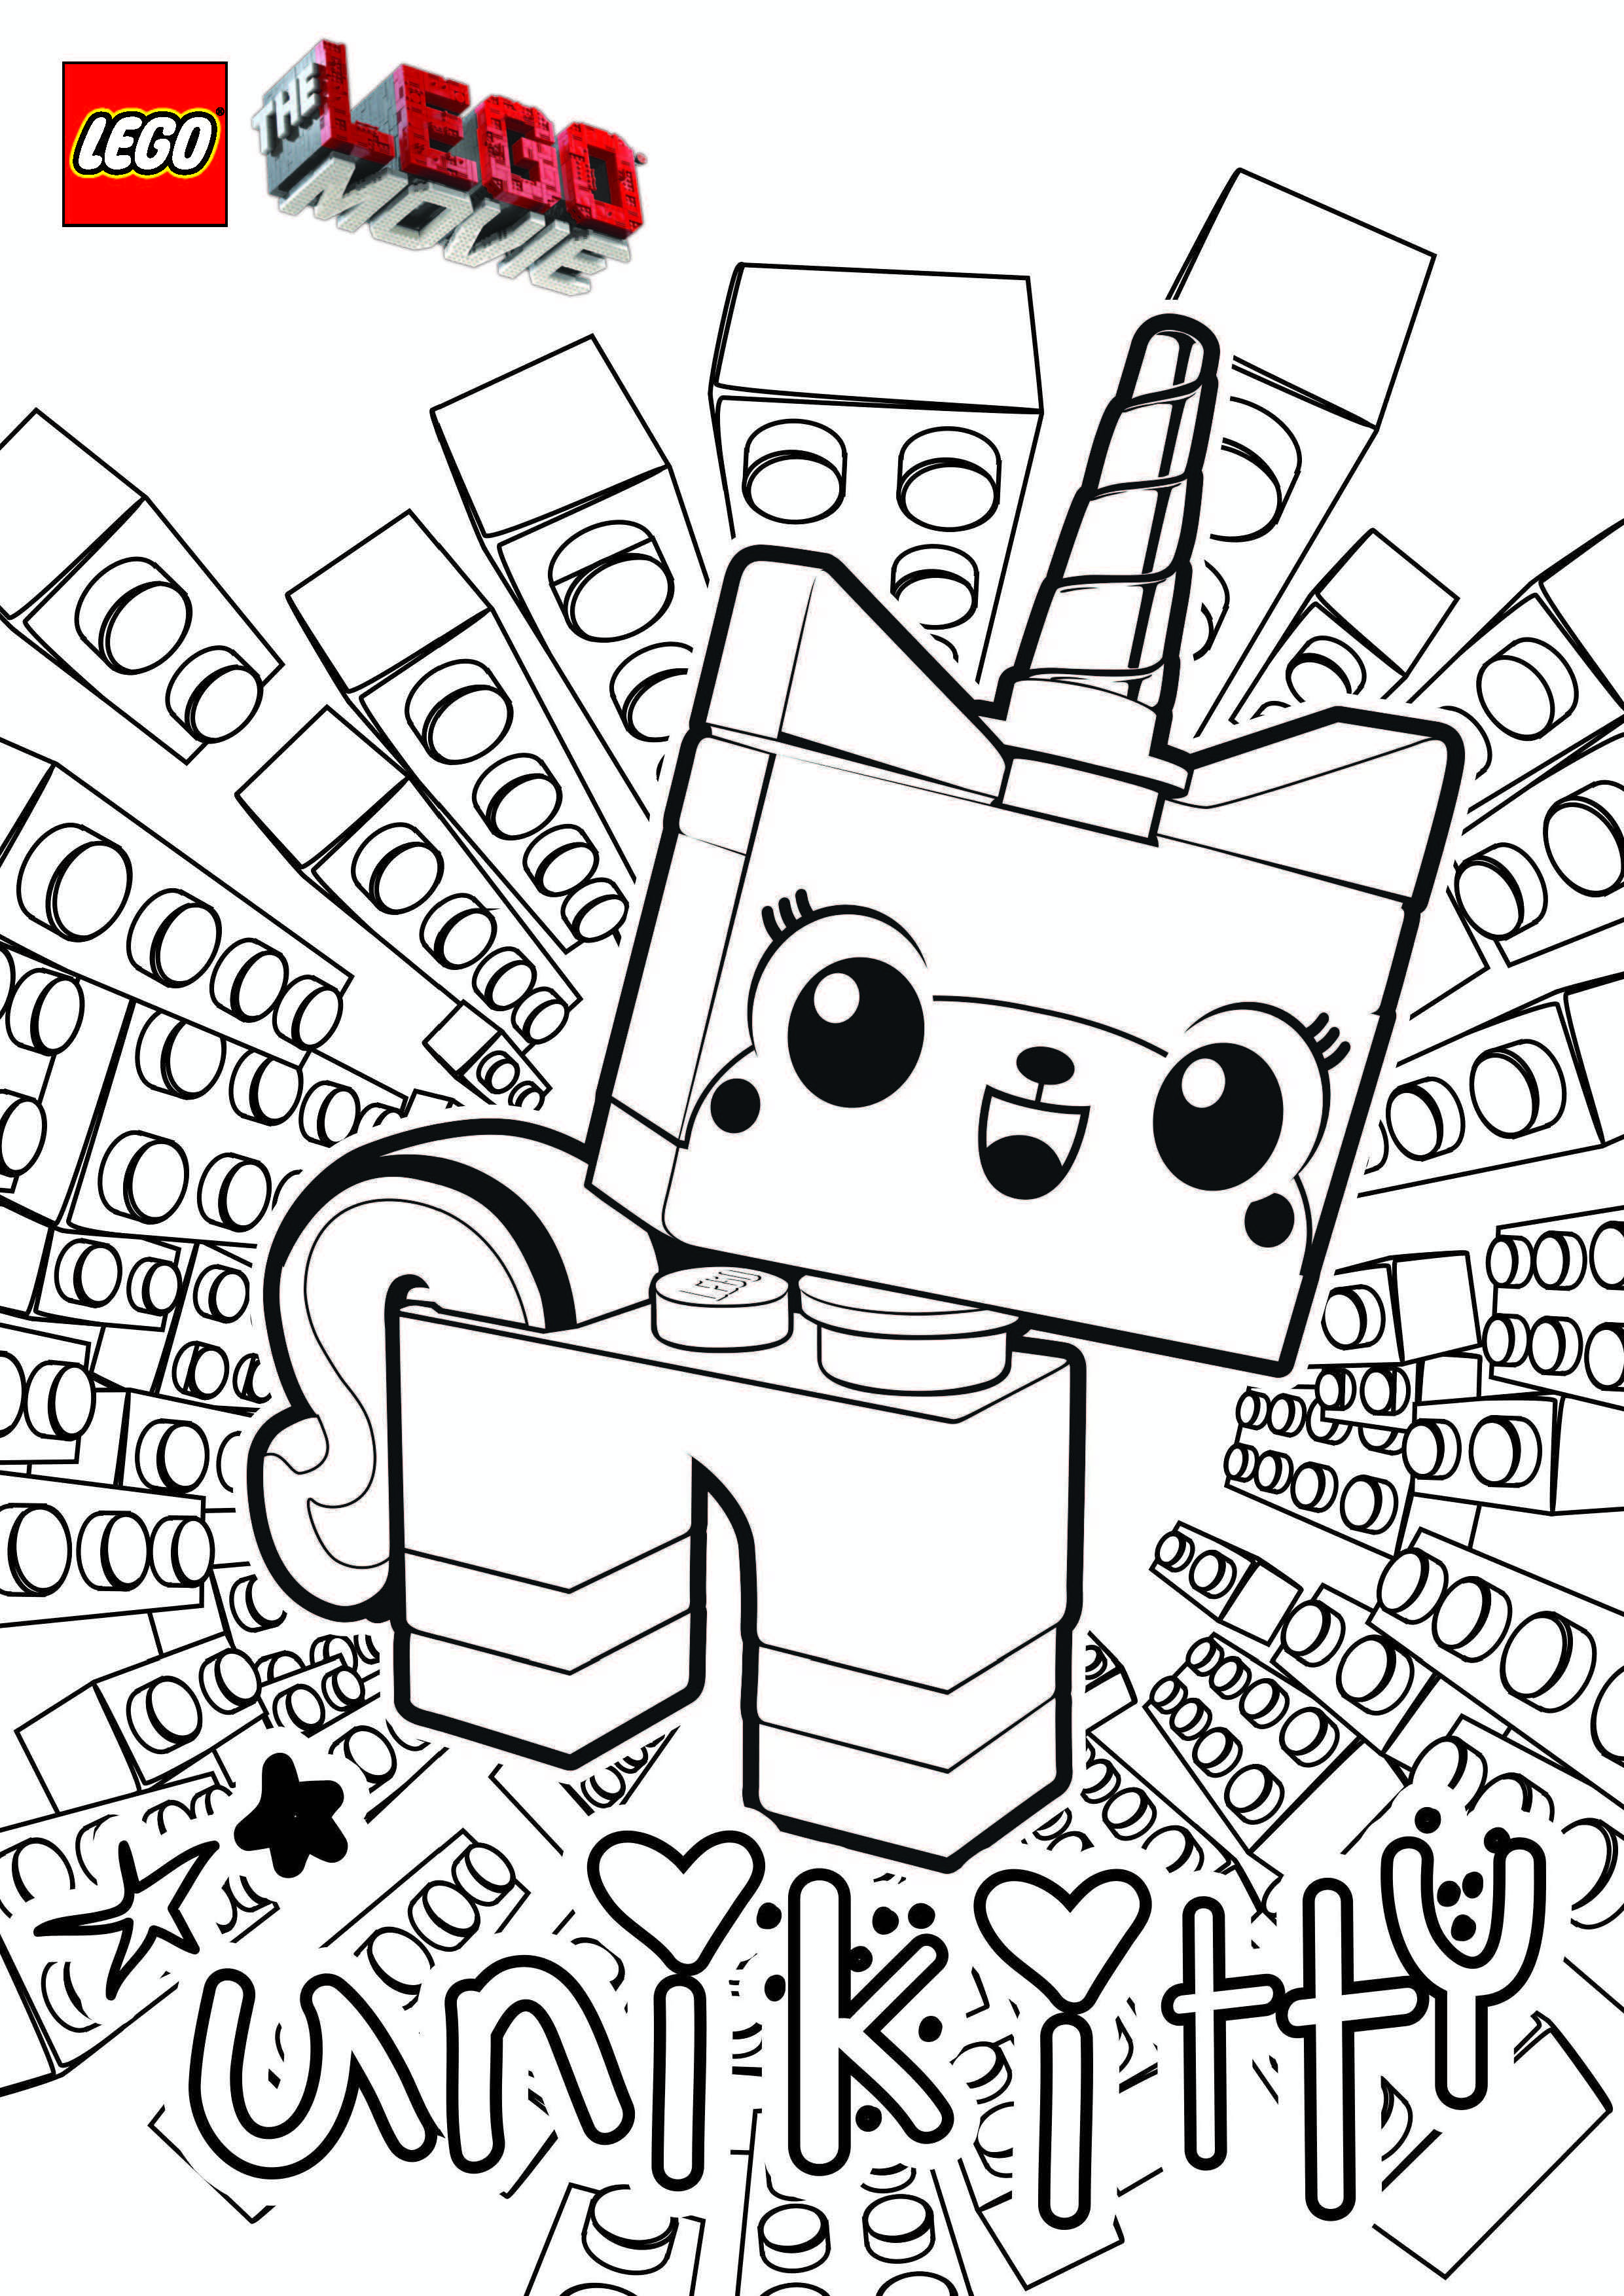 Lego Movie Party Ideas Goody Bags Or Party Activity Lego Coloring Pages Lego Movie Coloring Pages Lego Coloring Pages Unicorn Coloring Pages